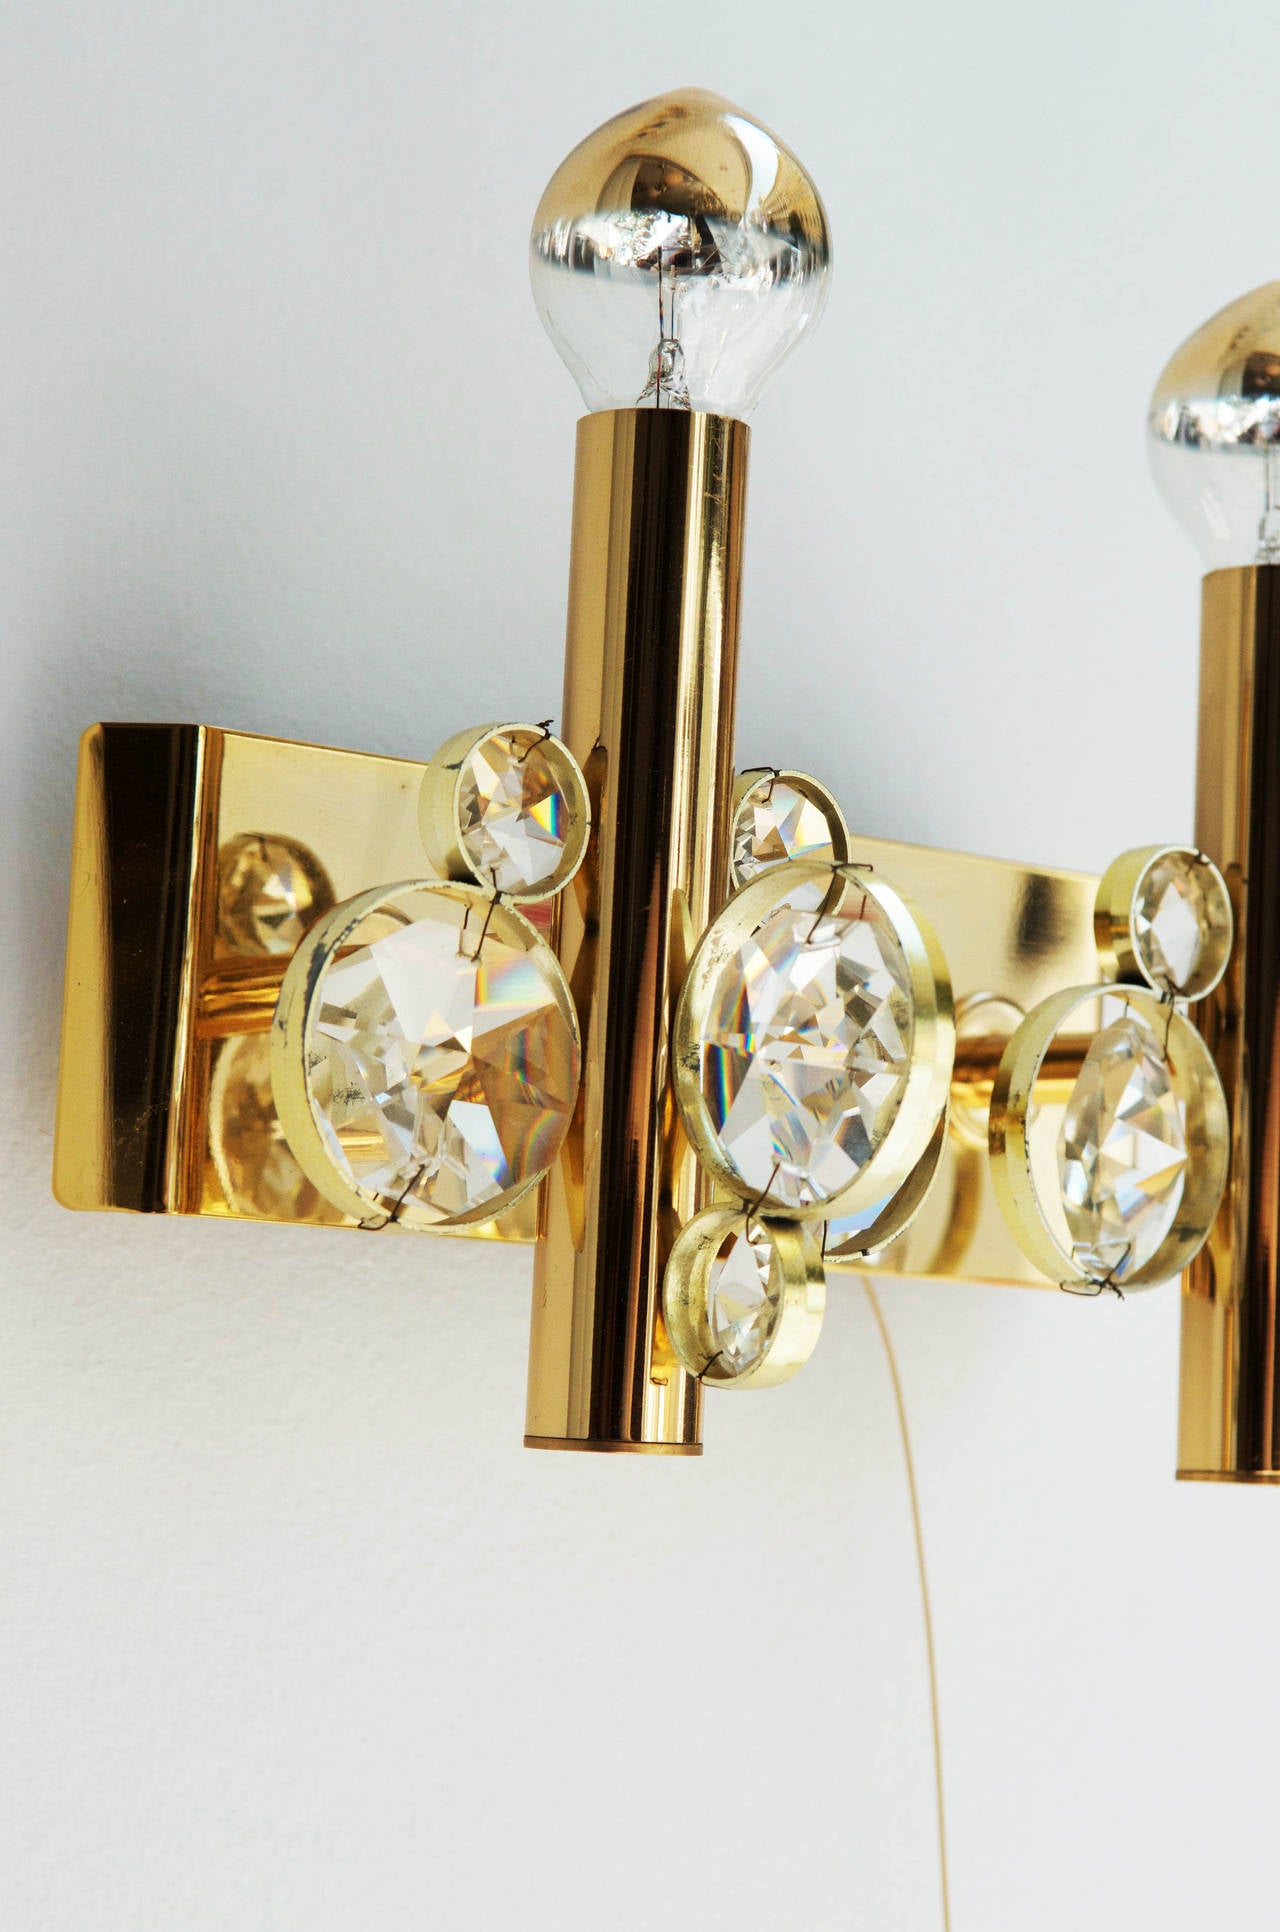 Impressive and stunning crystal wall sconce from about 1960s attributed to Gaetano Sciolari. Bras construction gold-plated. Electric with two lights sources. Dimensions: wide 30cm (11.81 in) height 20cm (7.87 in).